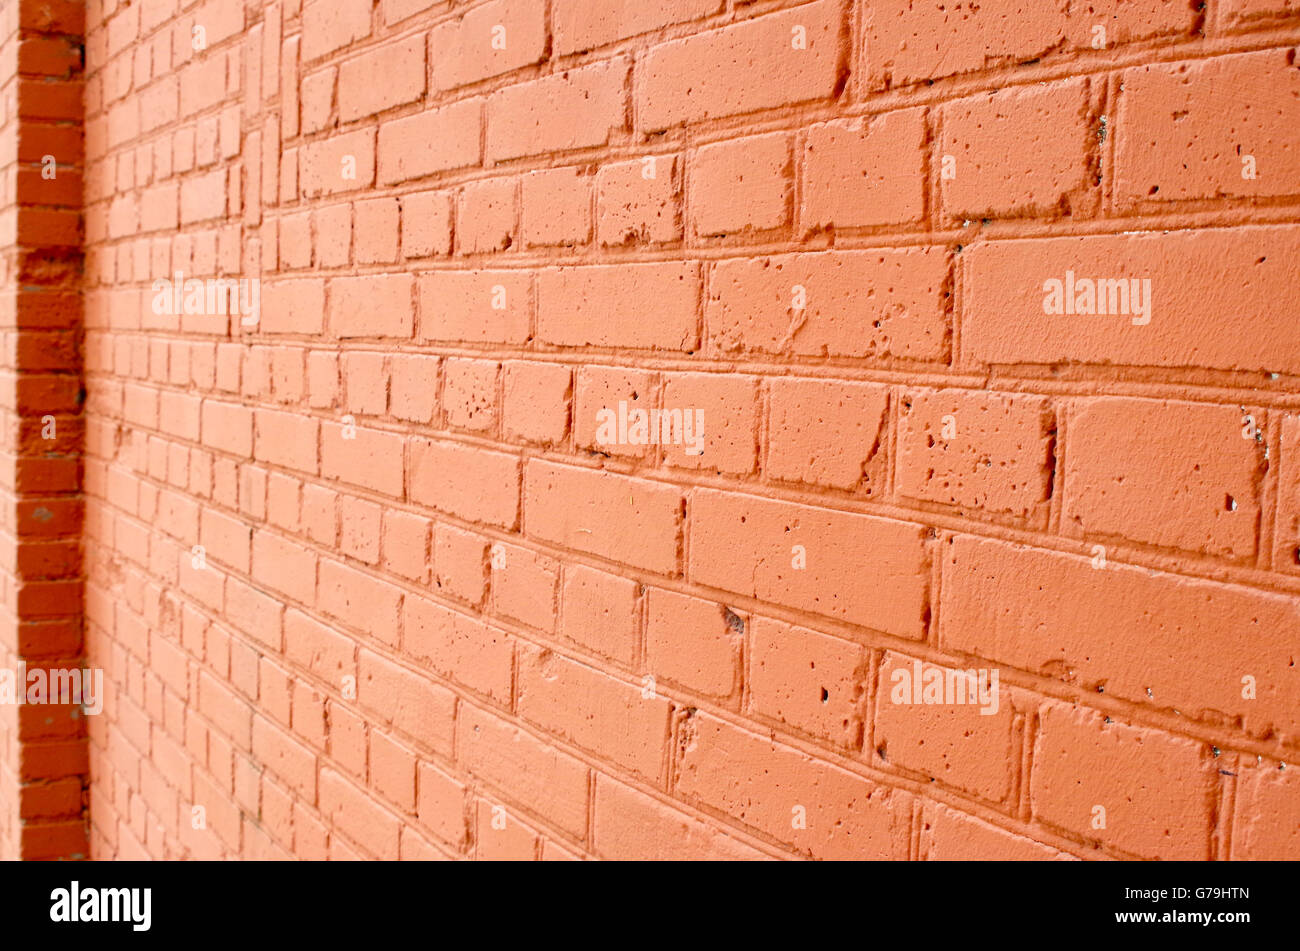 Angle view of a brick wall with a layer of red paint with blurred long-range plan to use as a background. - Stock Image